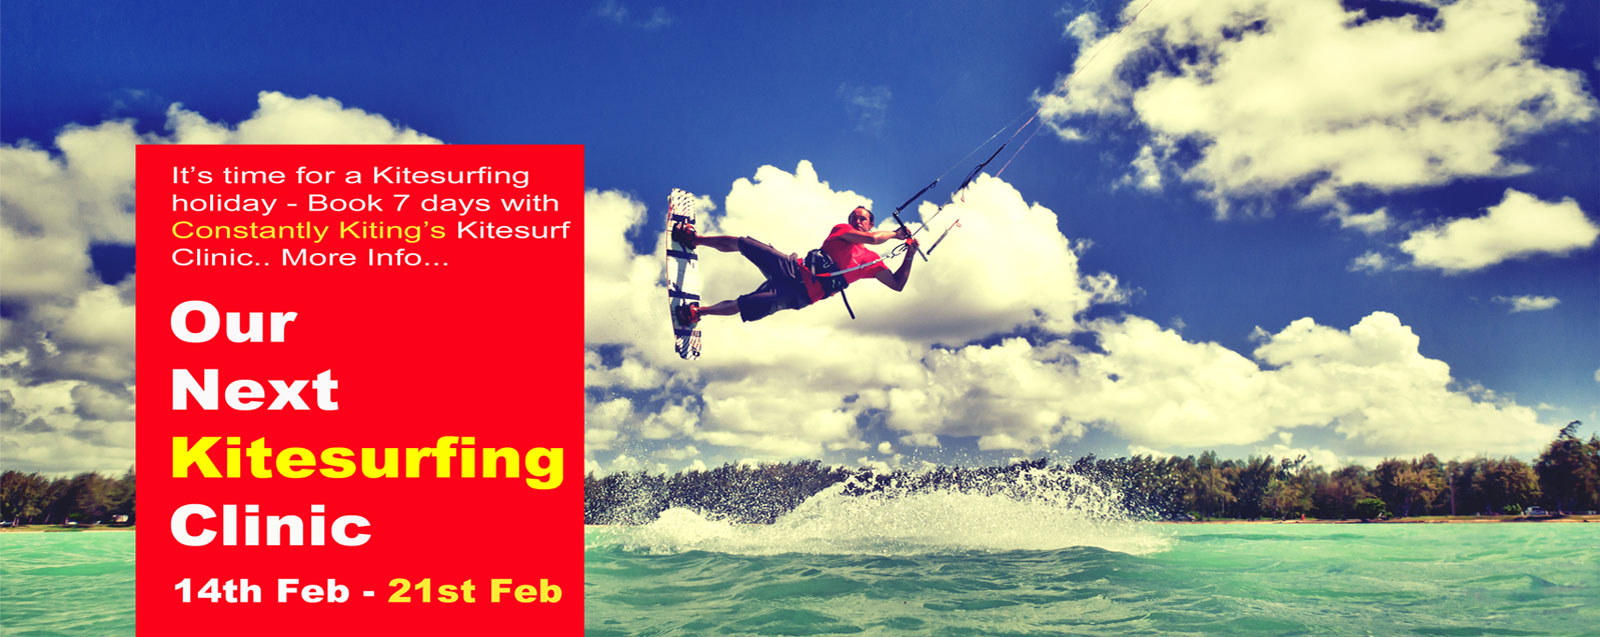 Kitesurfing Camps Langebaan south africa - Kitesurfing clinics Langebaan South Africa